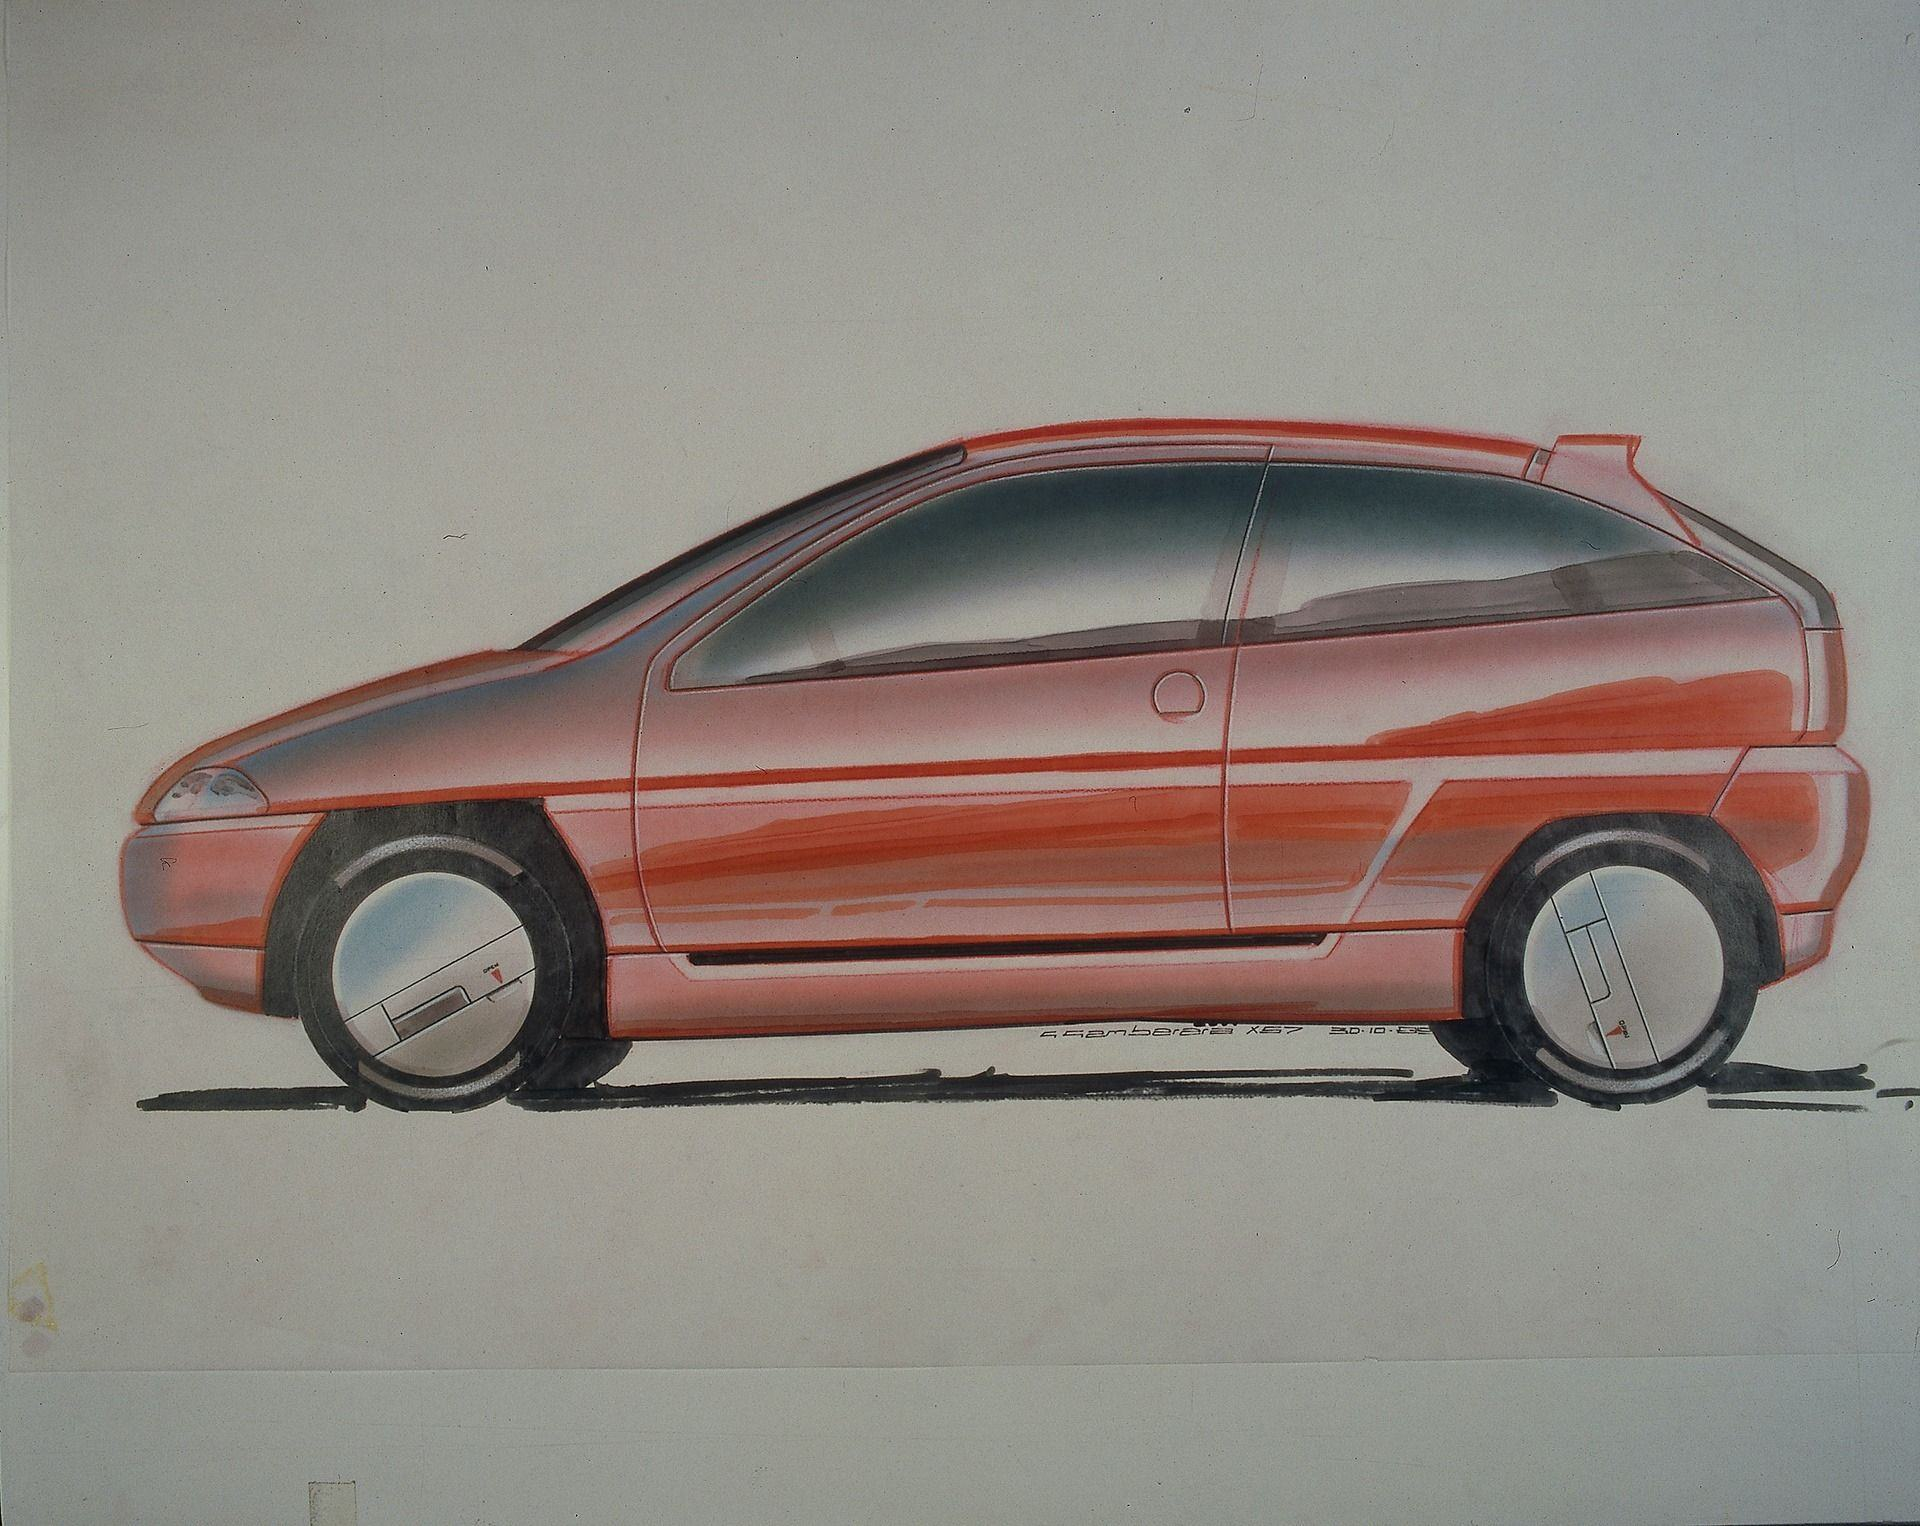 2020-30-years-of-Renault-CLIO-Renault-CLIO-I-1990-1999